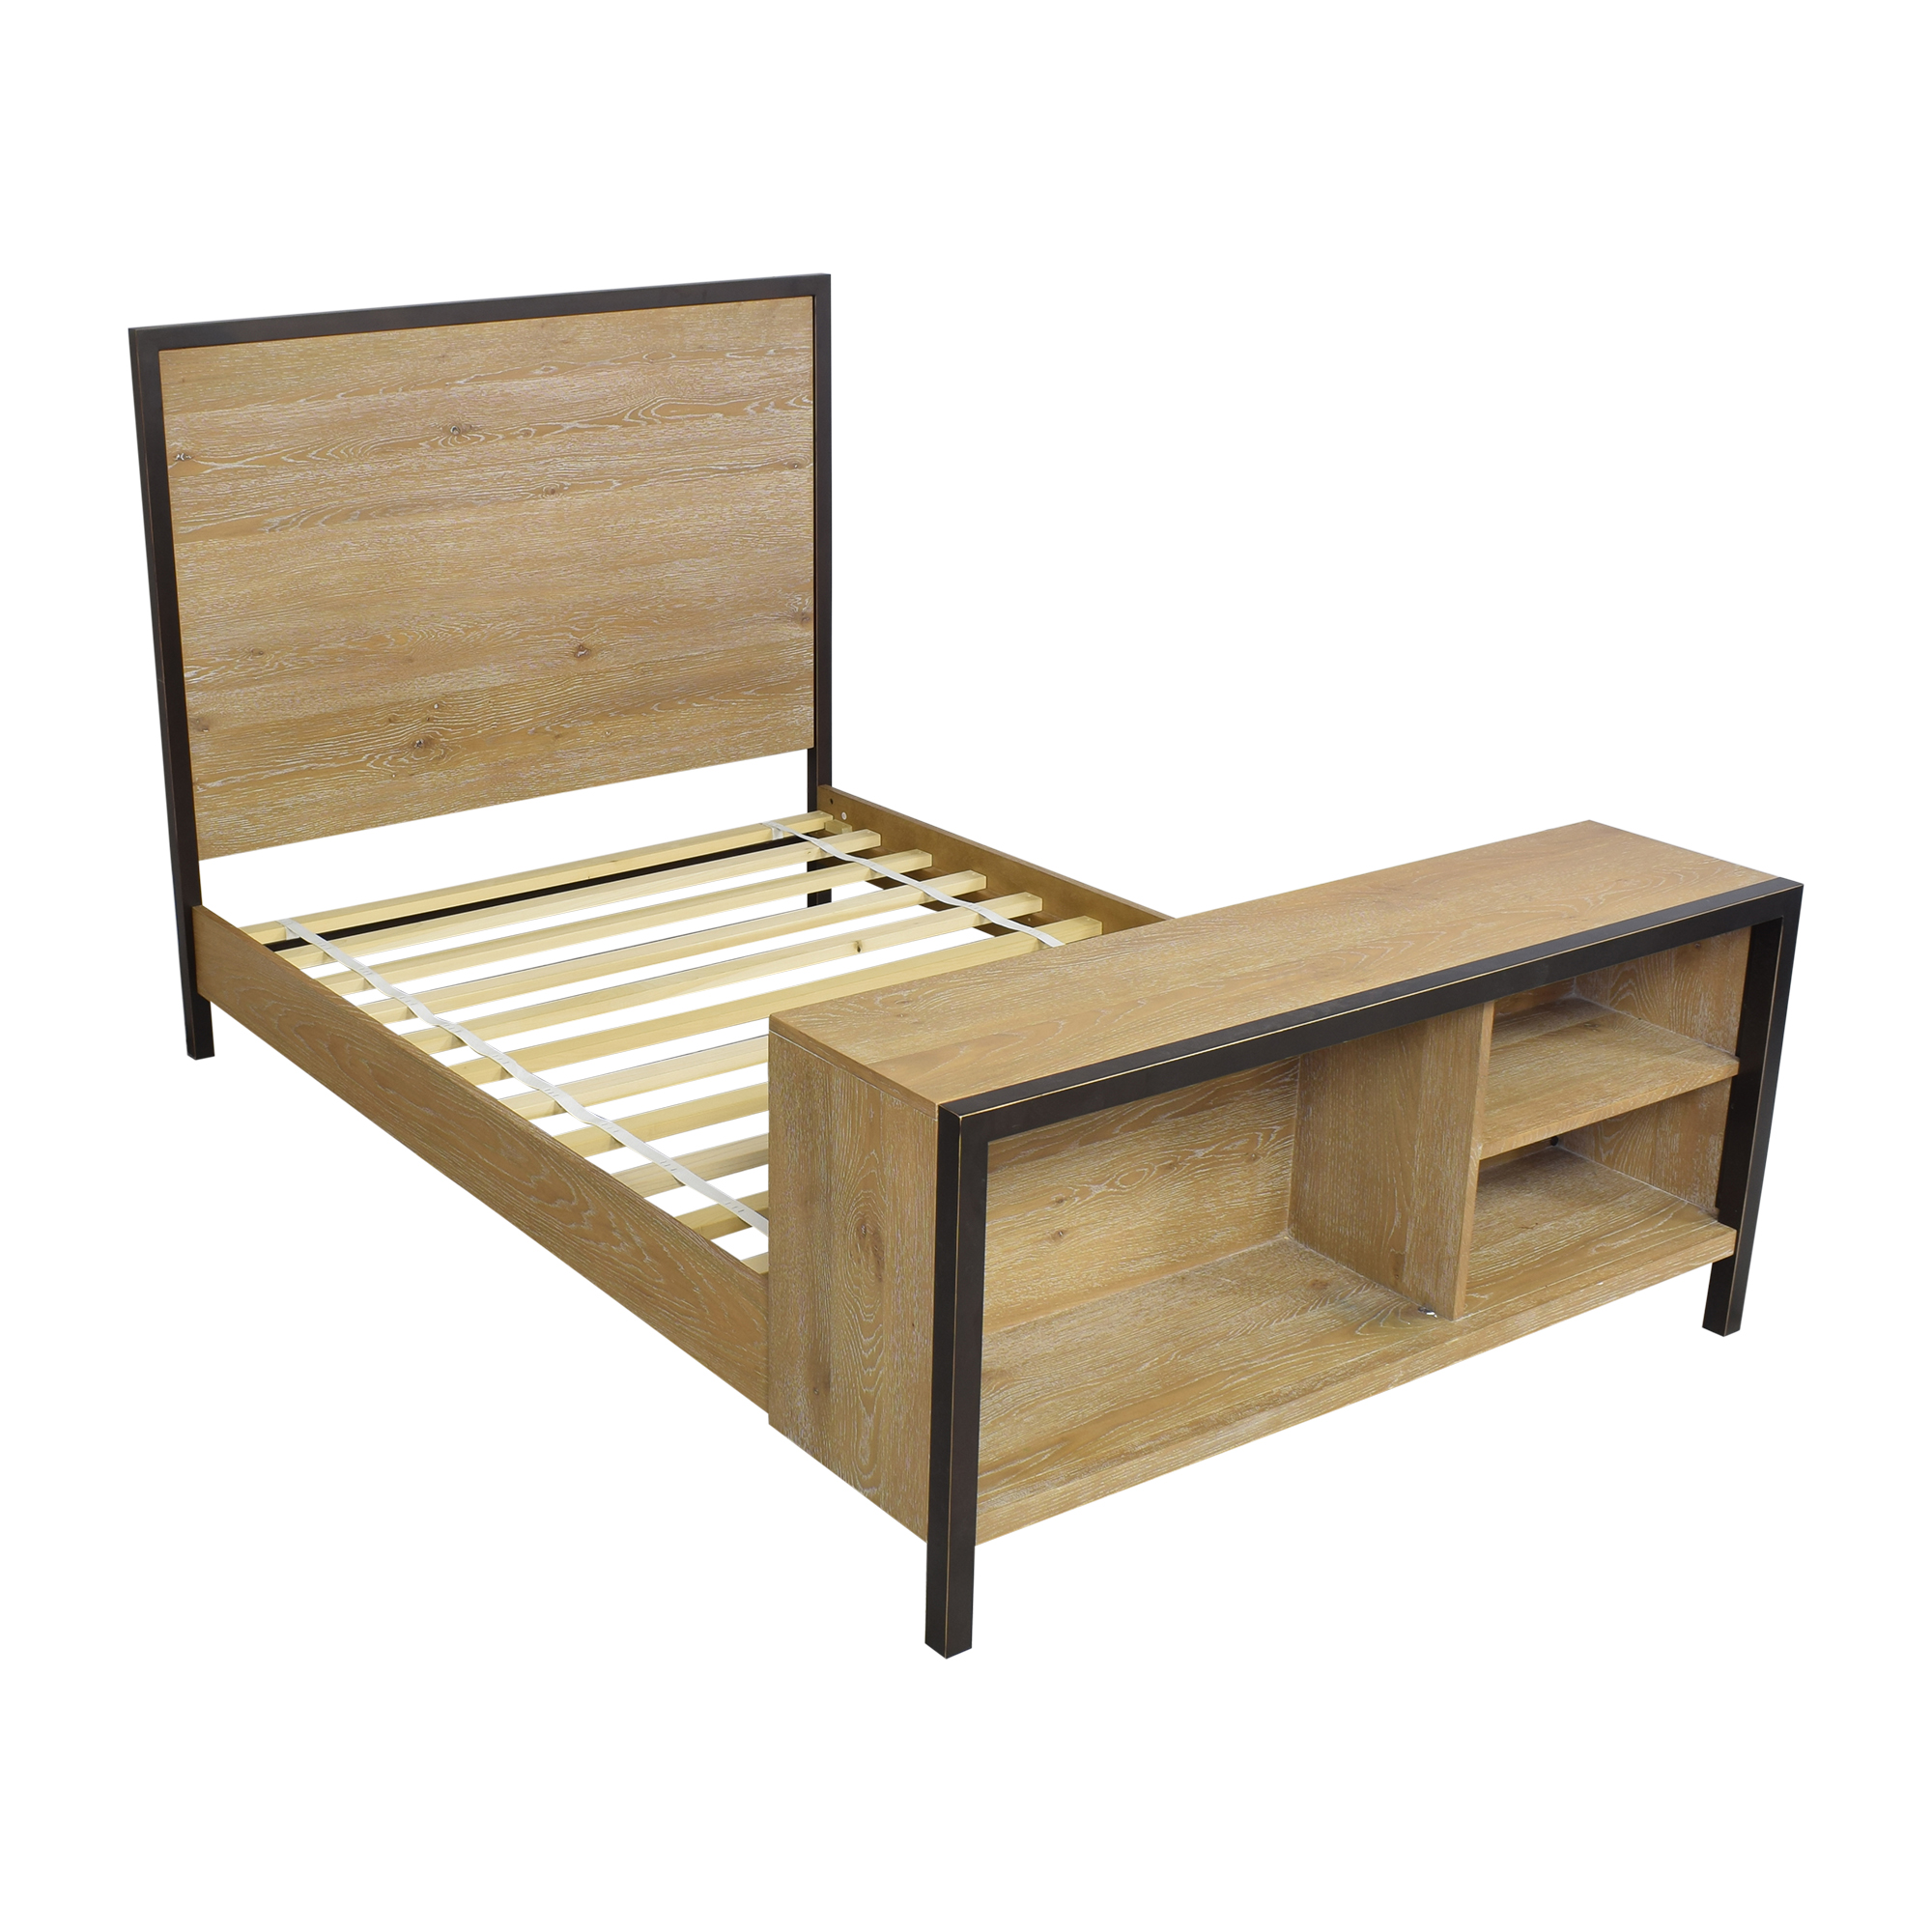 West Elm West Elm Full Bed with Bookcase coupon